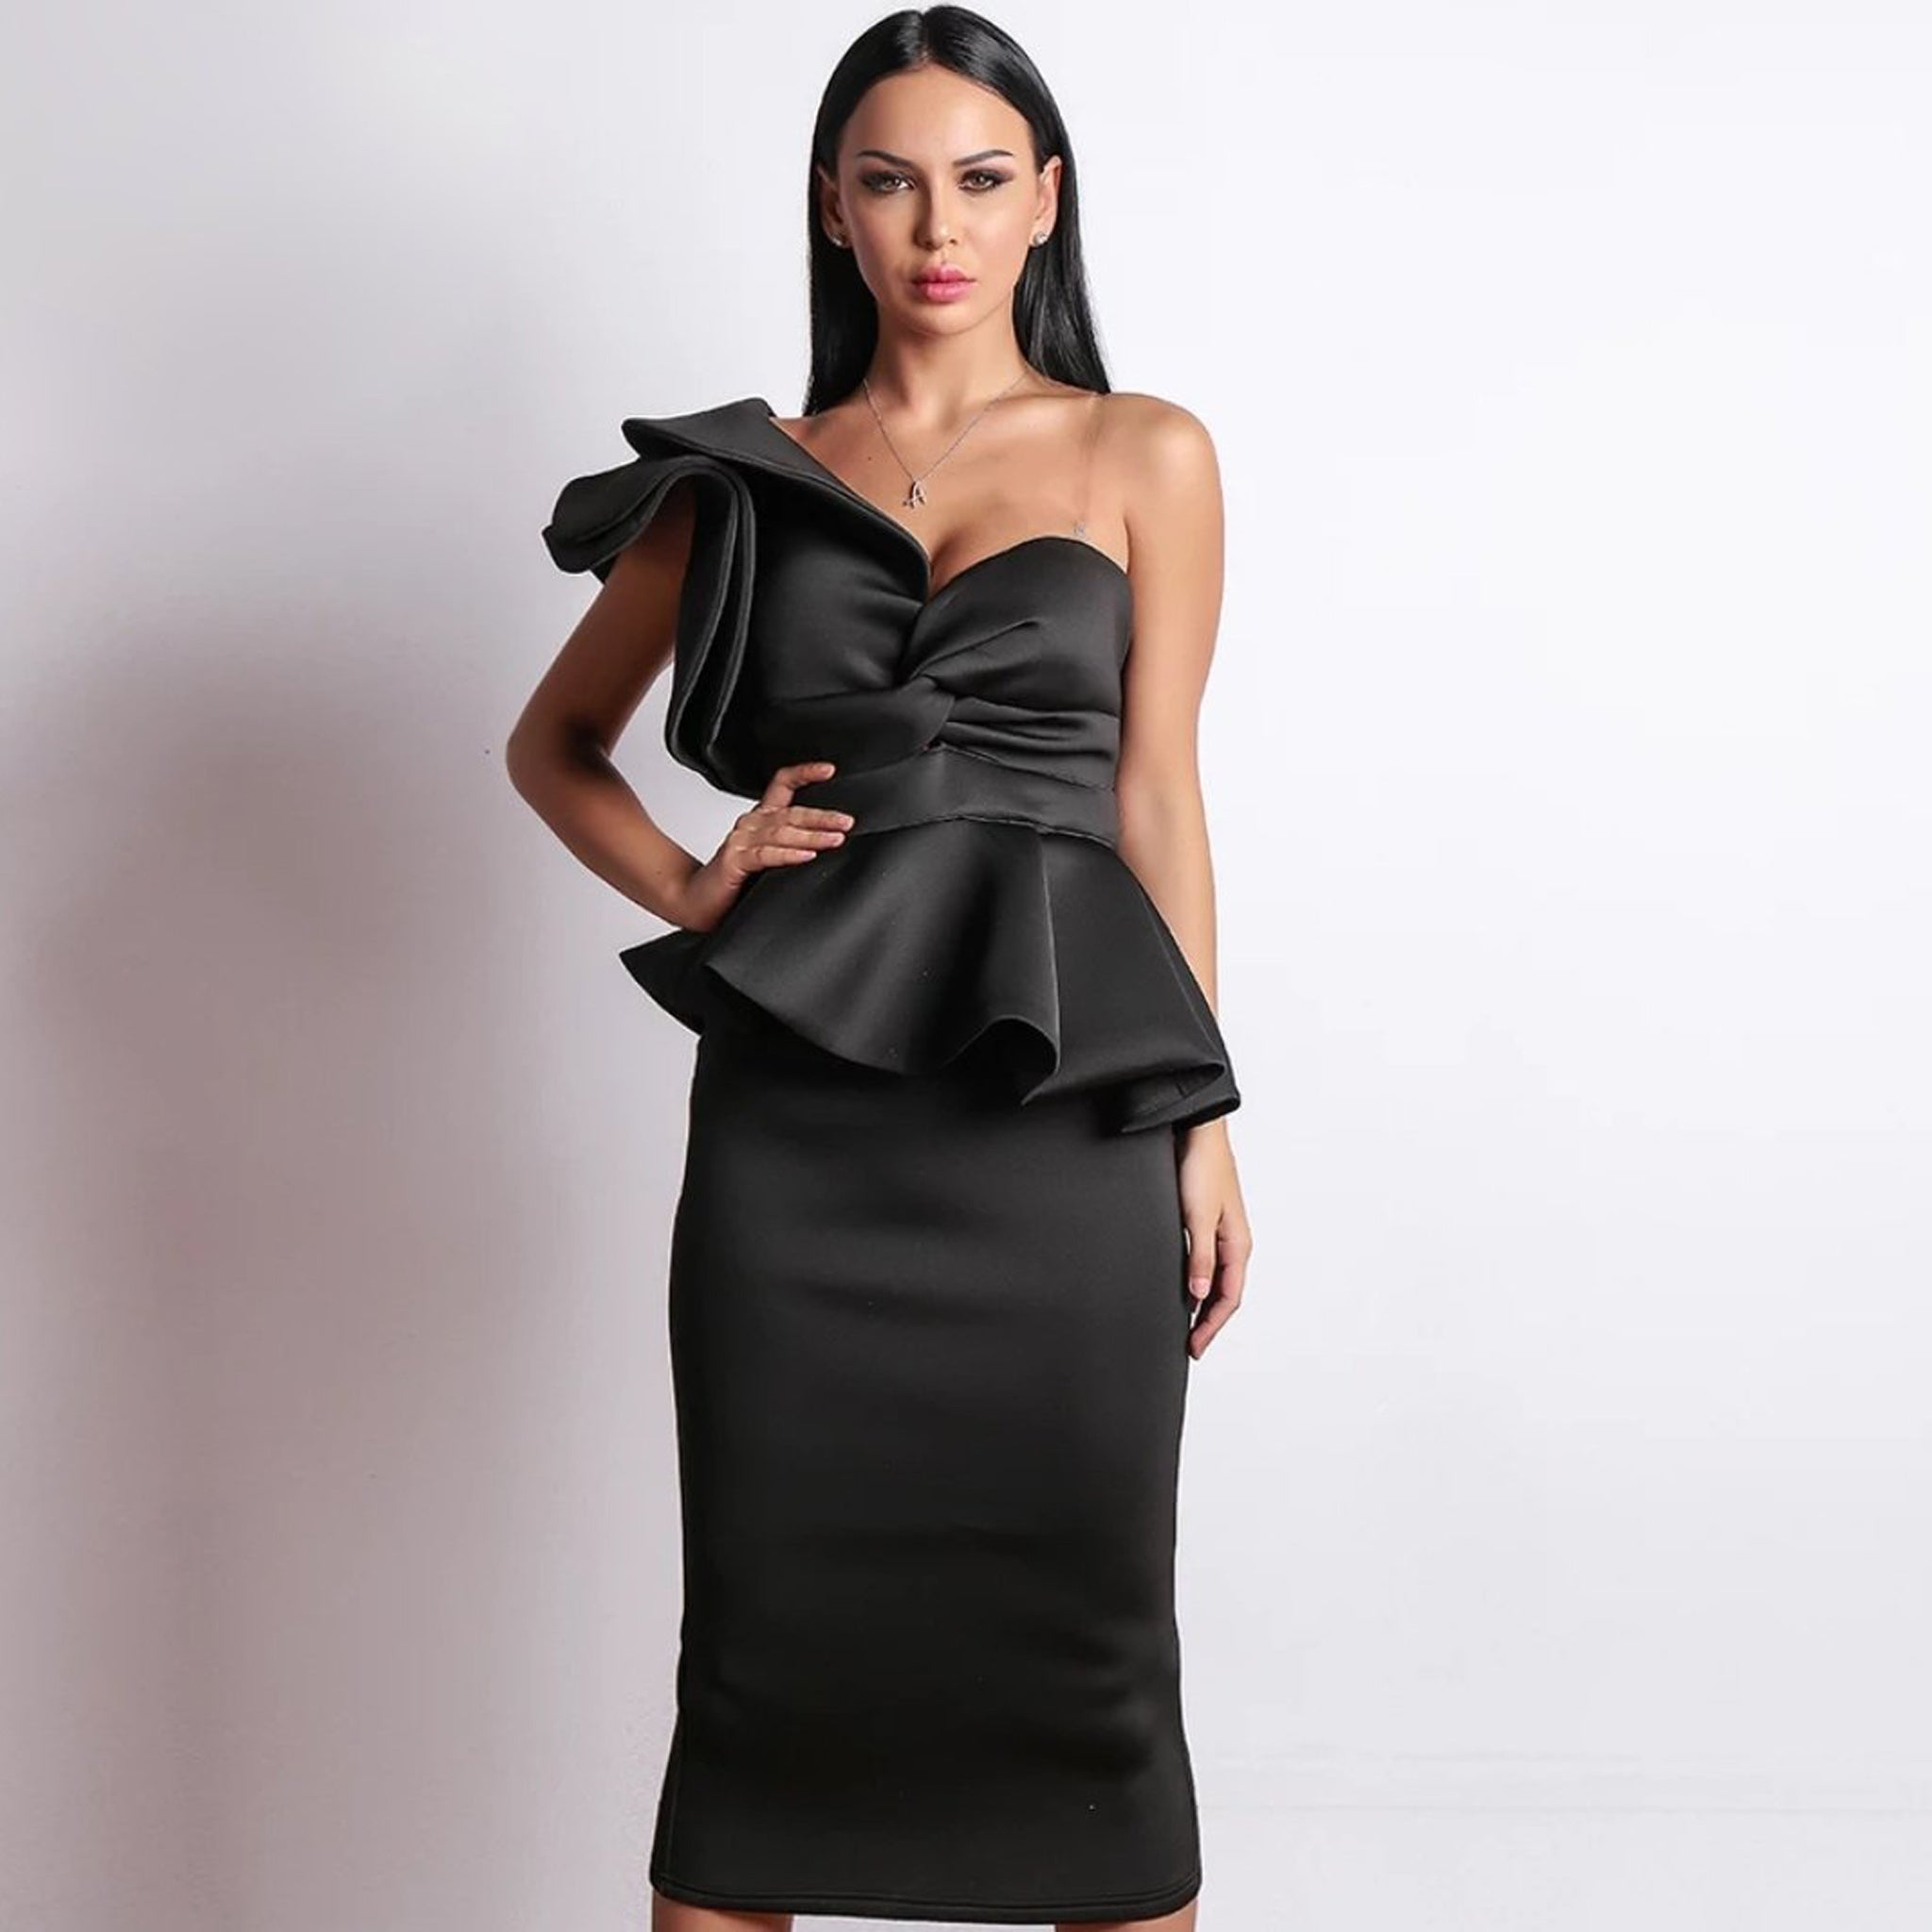 Starlet Ruffle Dress- Black - Top Glam Shop